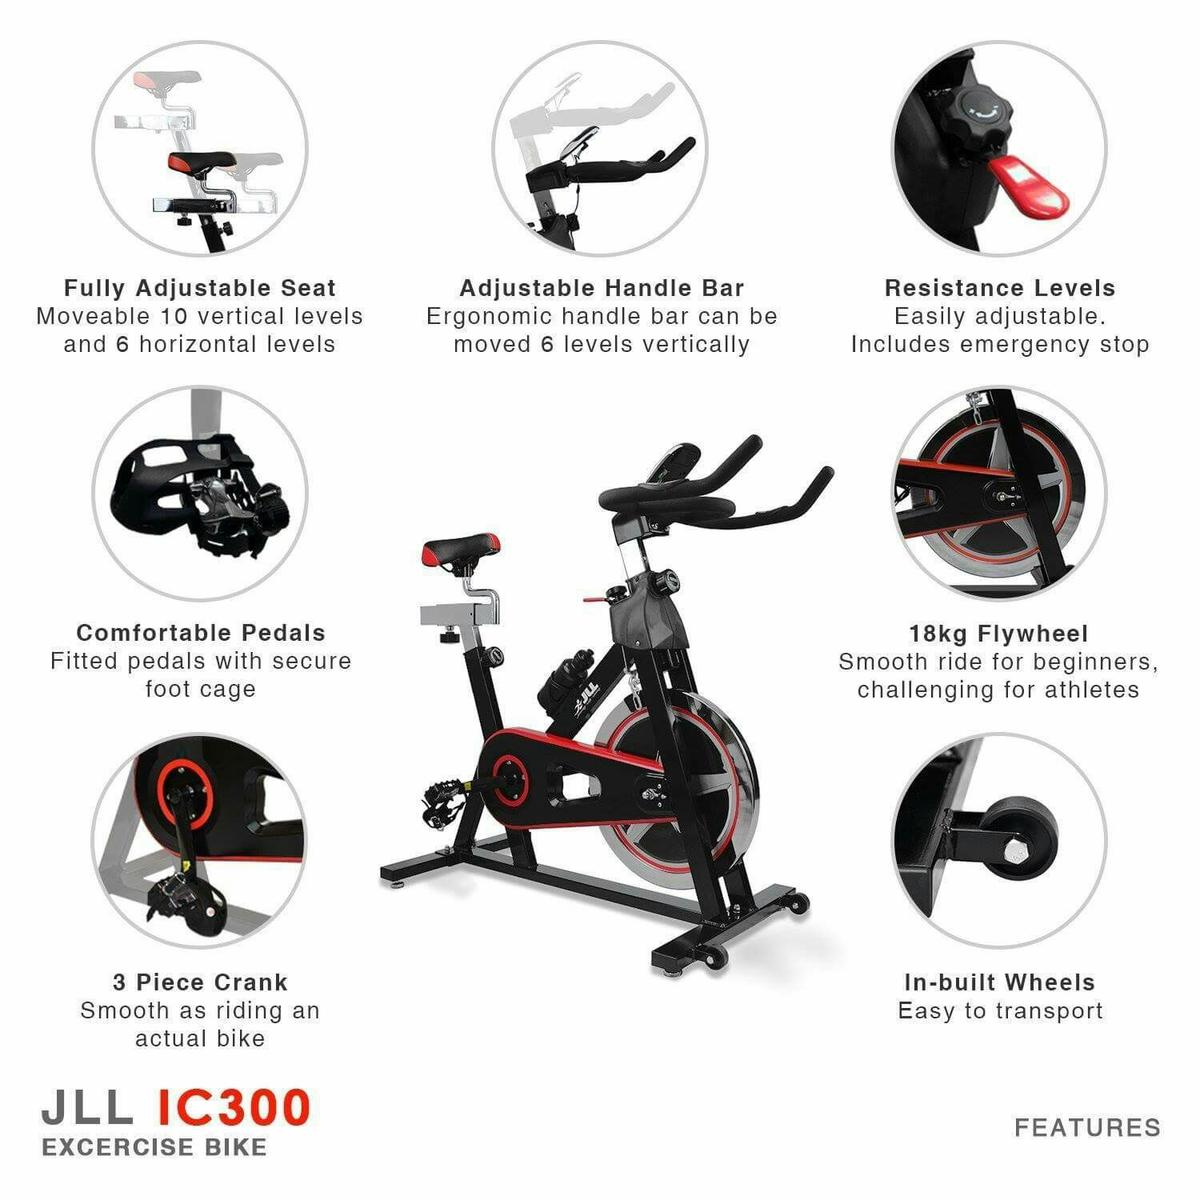 JLL® IC300 Indoor Exercise Bike in OL7-Lyne for £125 00 for